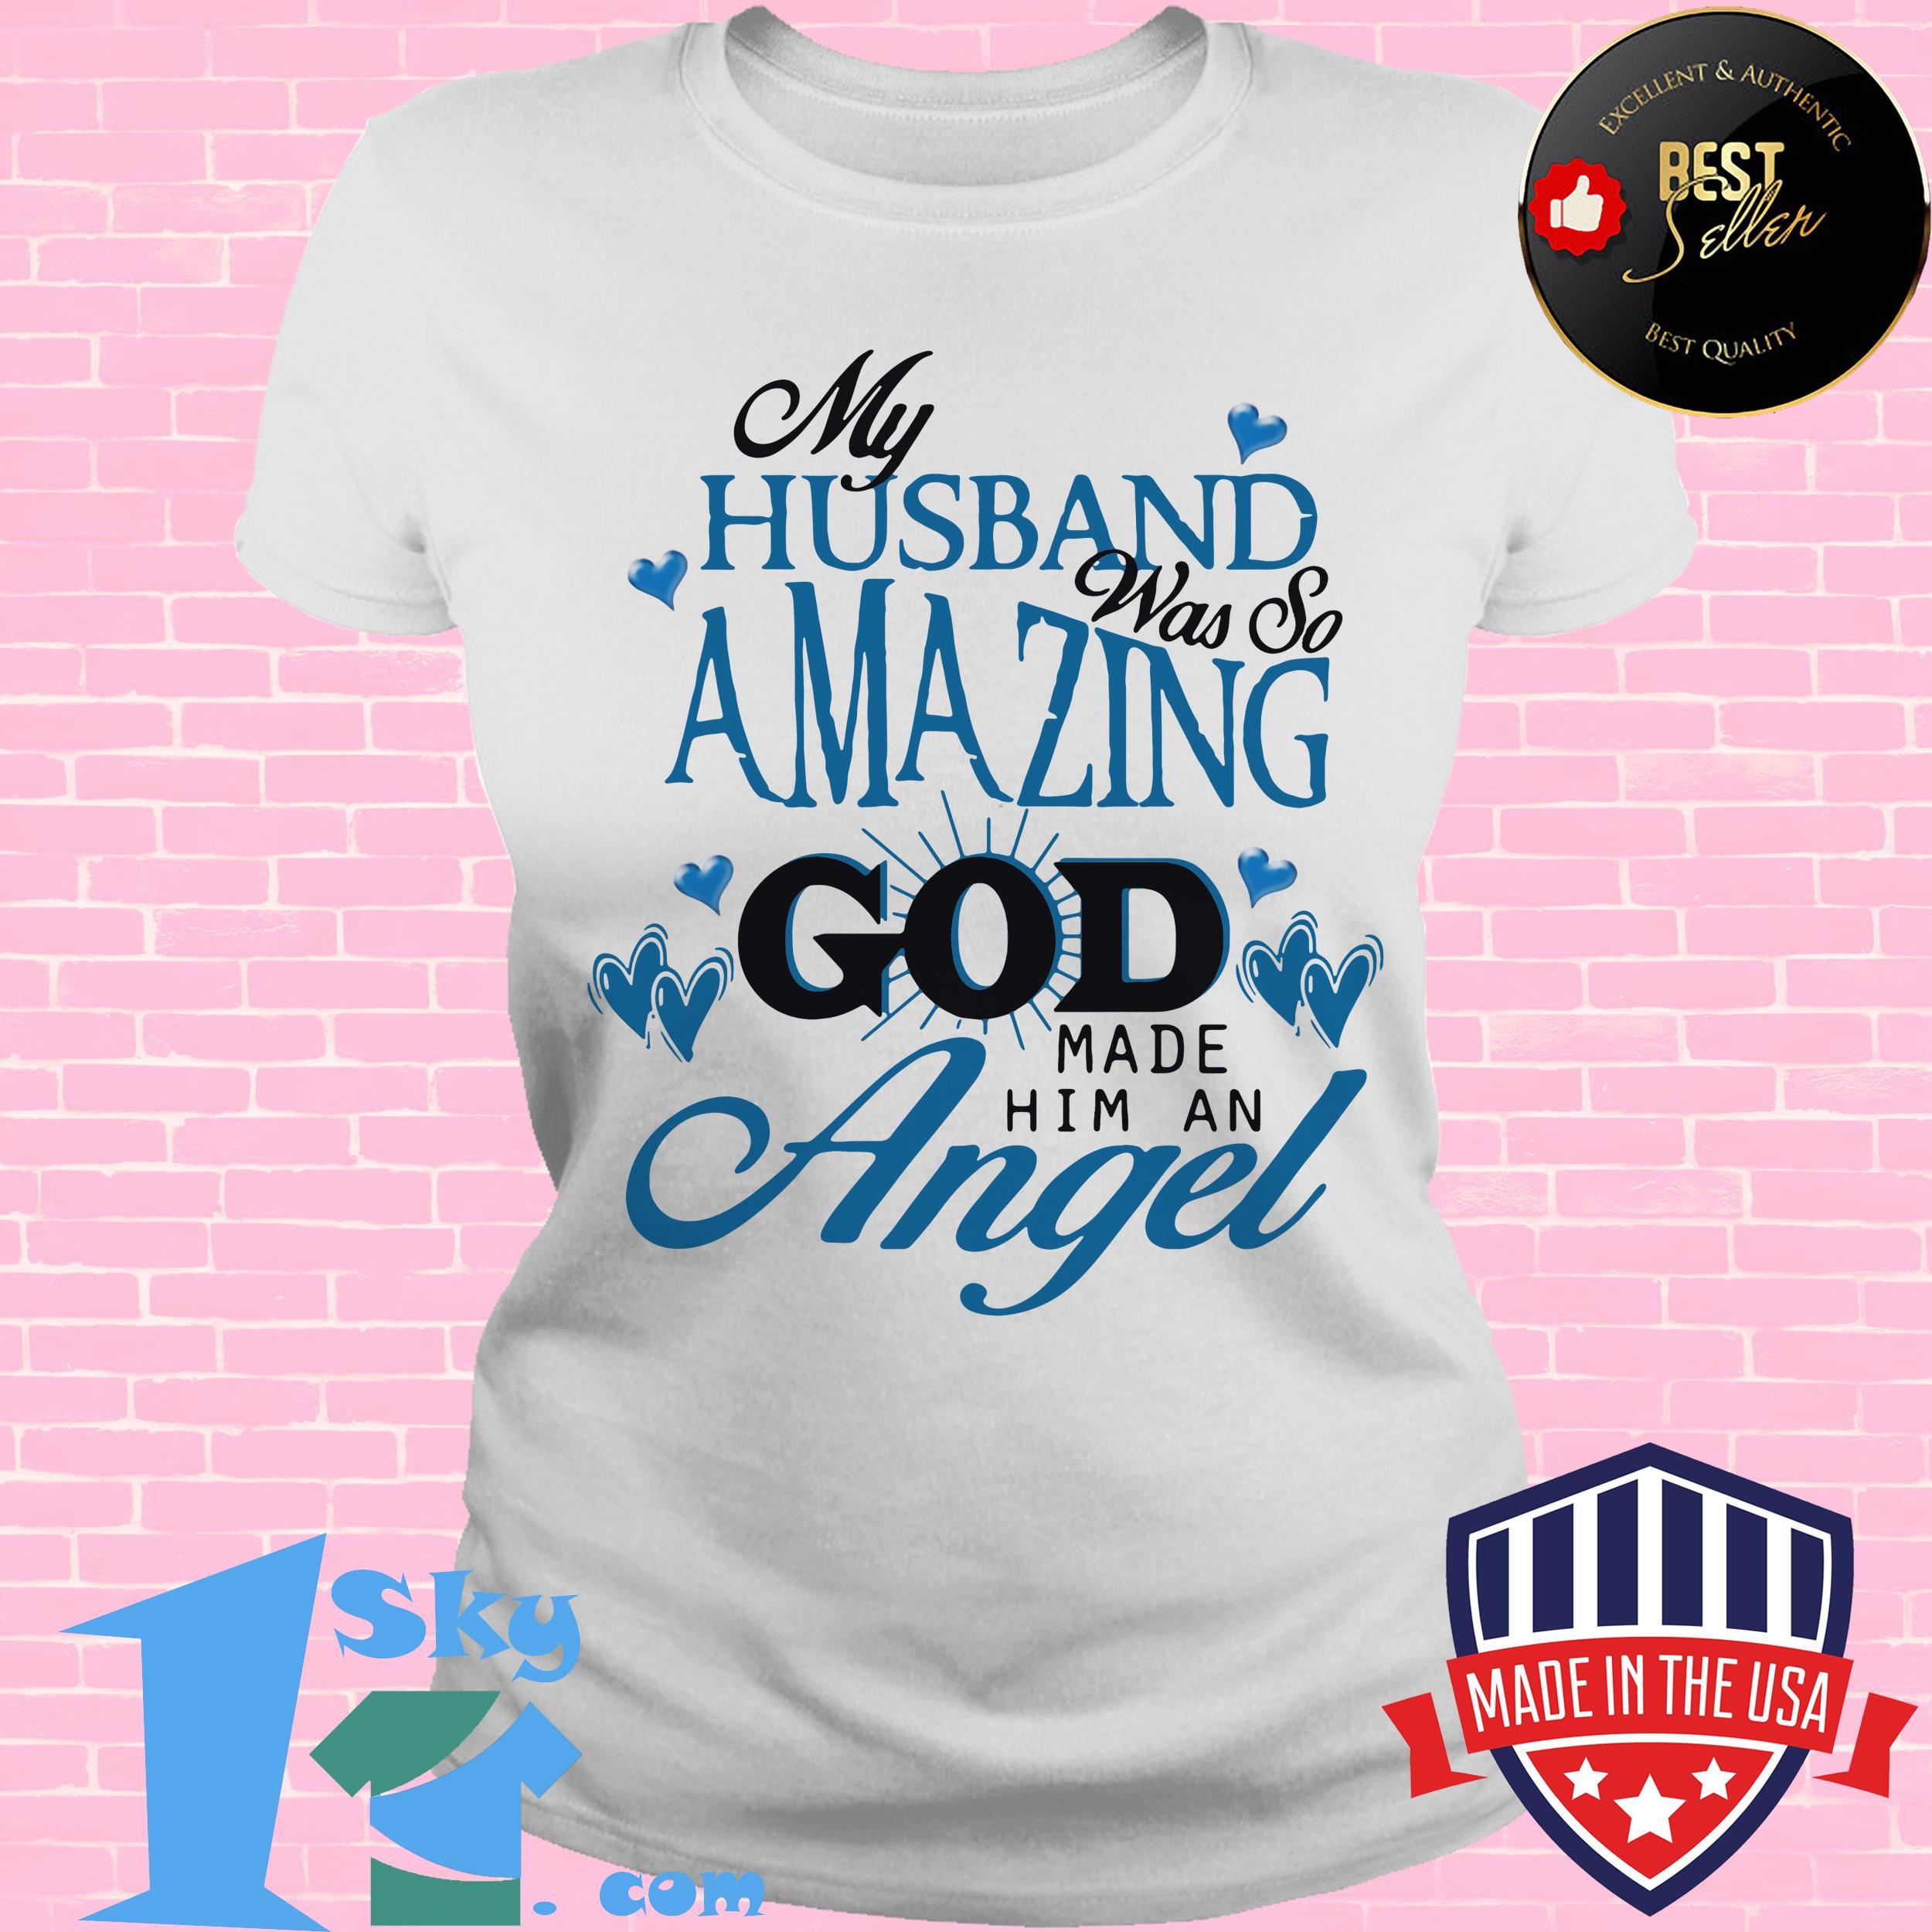 my husband was so amazing god made him an angel ladies tee - My Husband Was So Amazing God Made Him An Angel Shirt